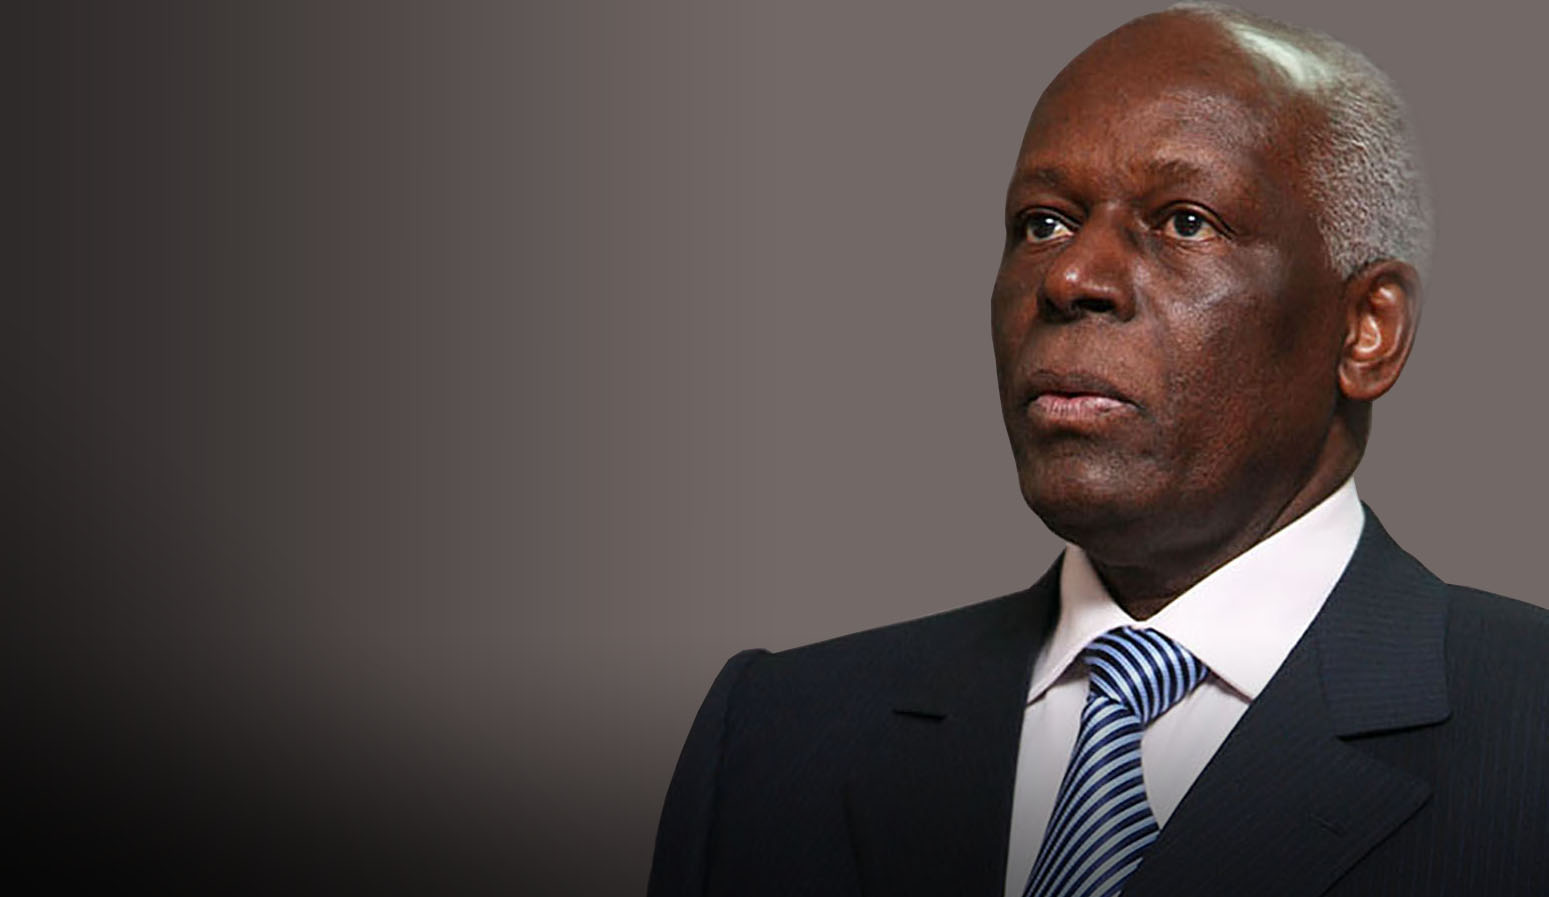 At the time, private media reported that dos Santos, Angola's leader of the last 38 years, had suffered a stroke, although the government has declined to comment on his condition. Image courtesy: Afripost